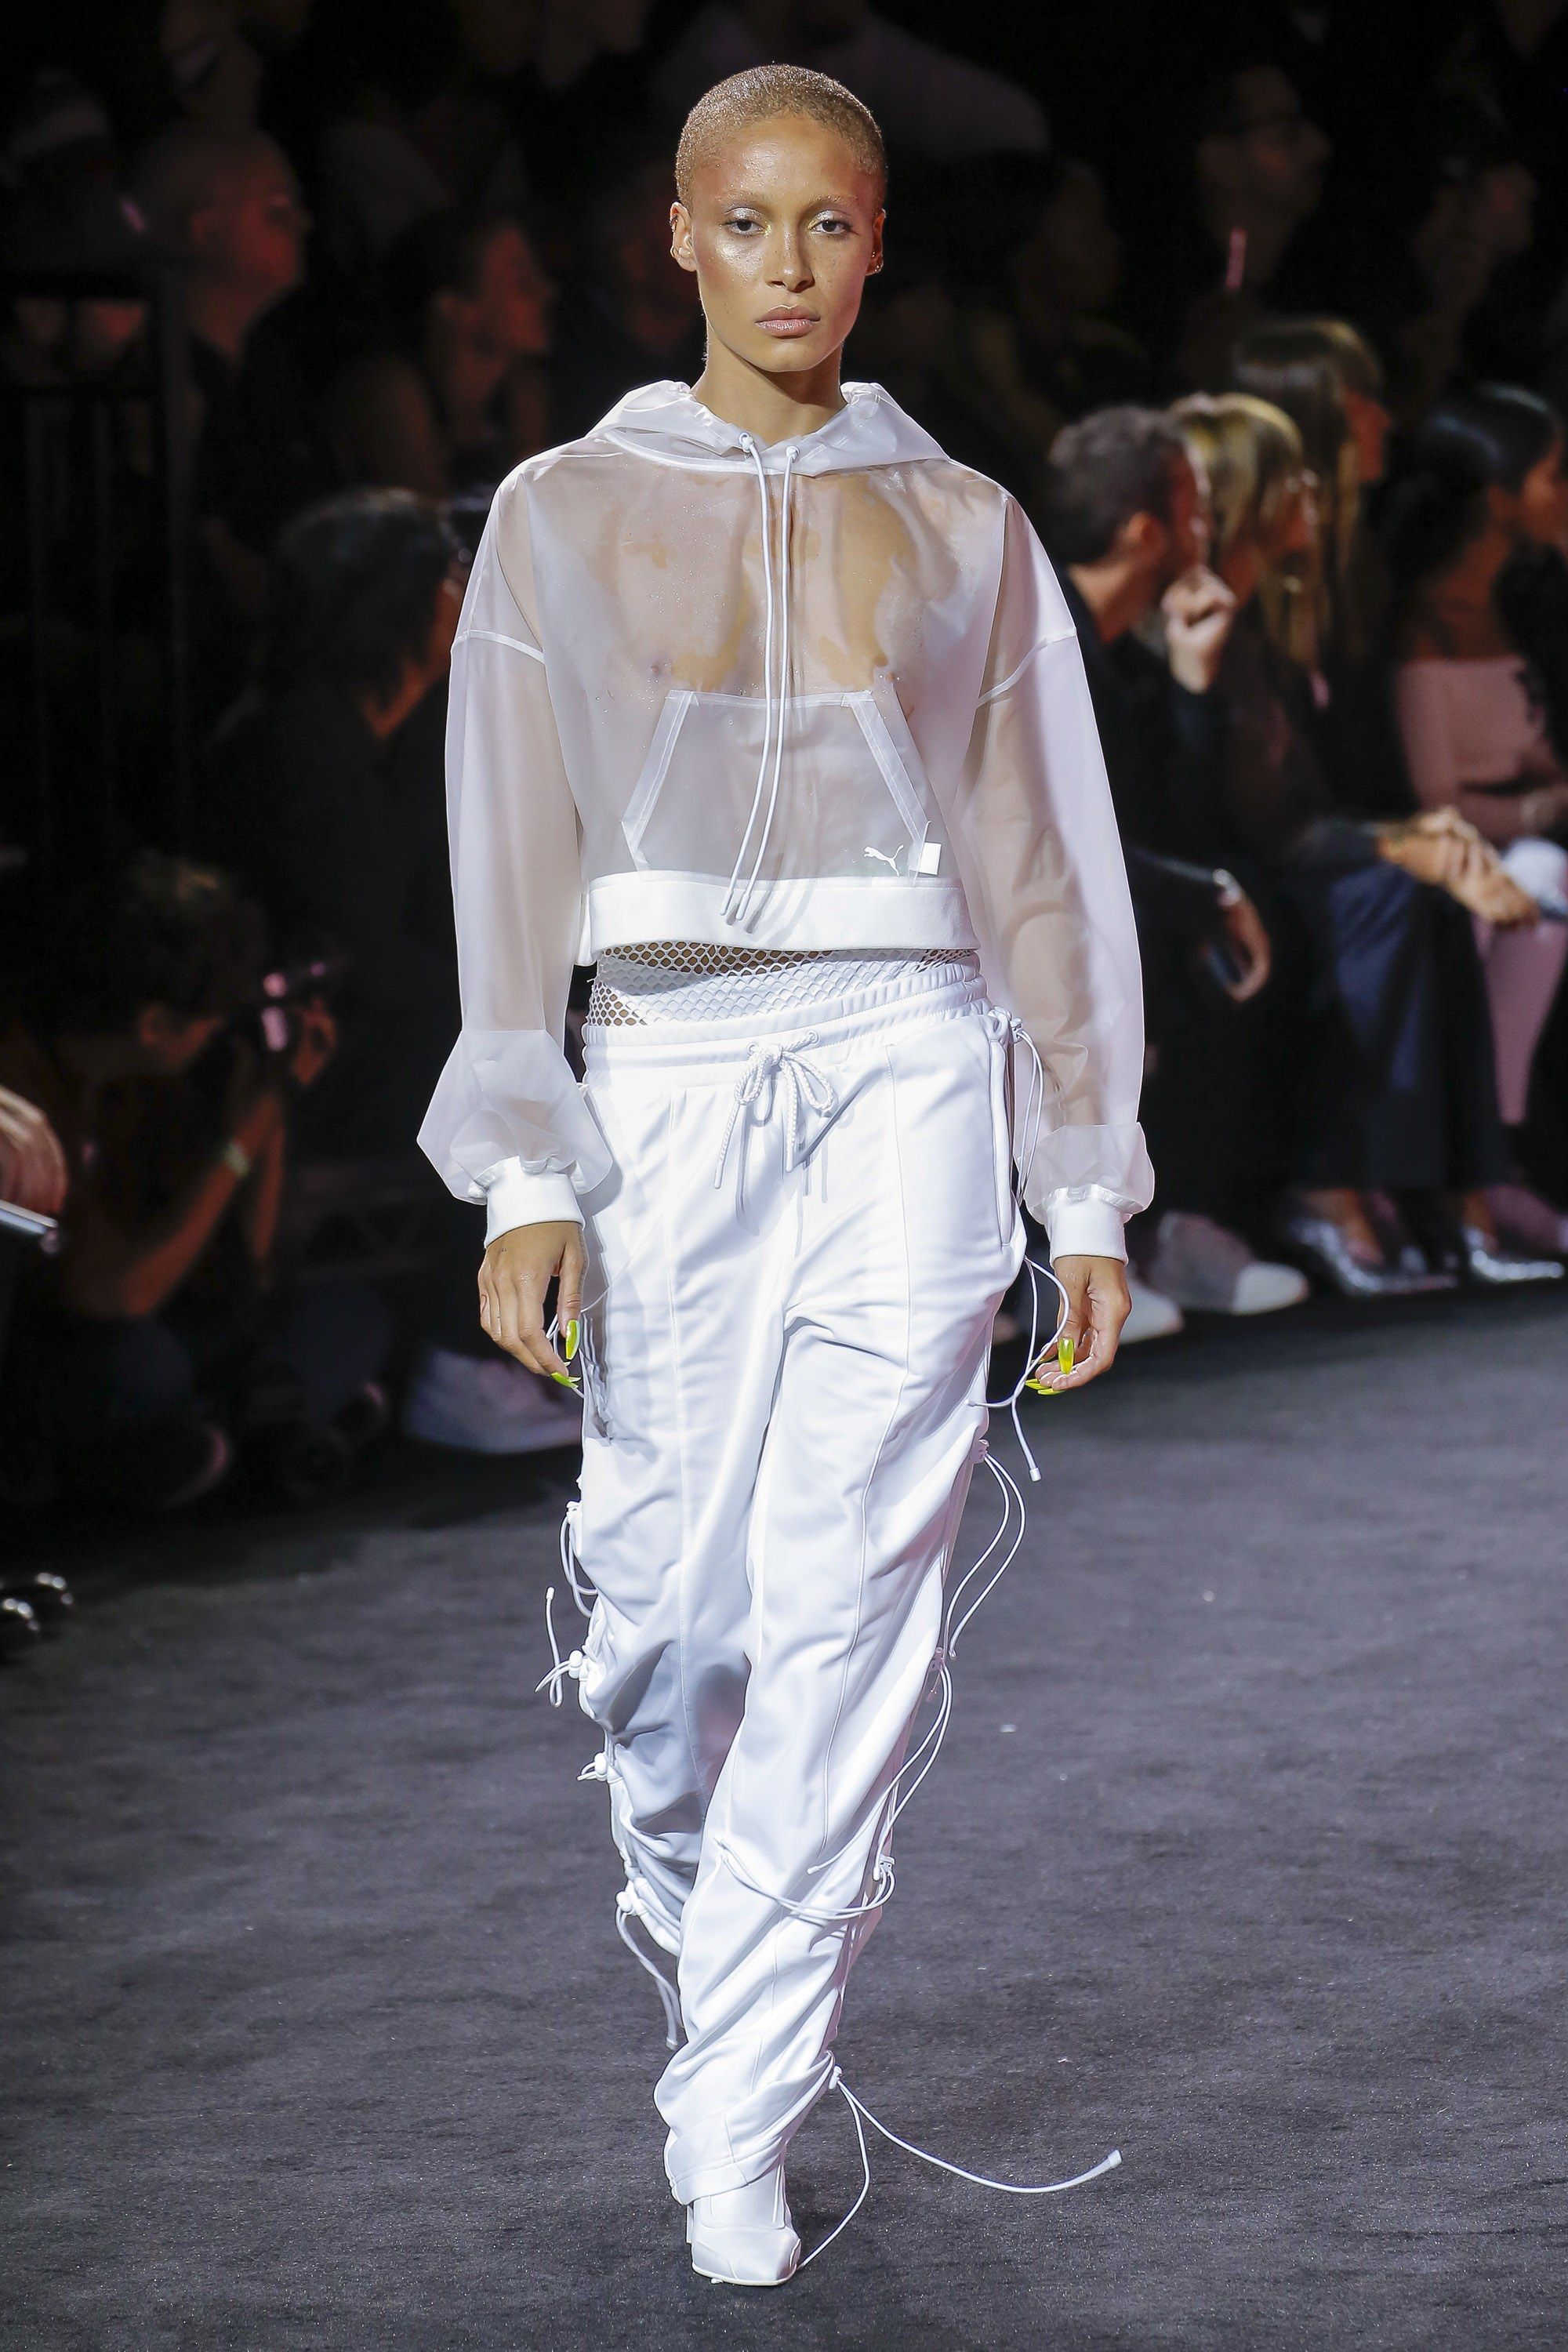 6774d6227a4 Just wear a crisp white bodysuit underneath the top. ❤ Fenty x Puma Spring  2018 Ready-to-Wear collection.